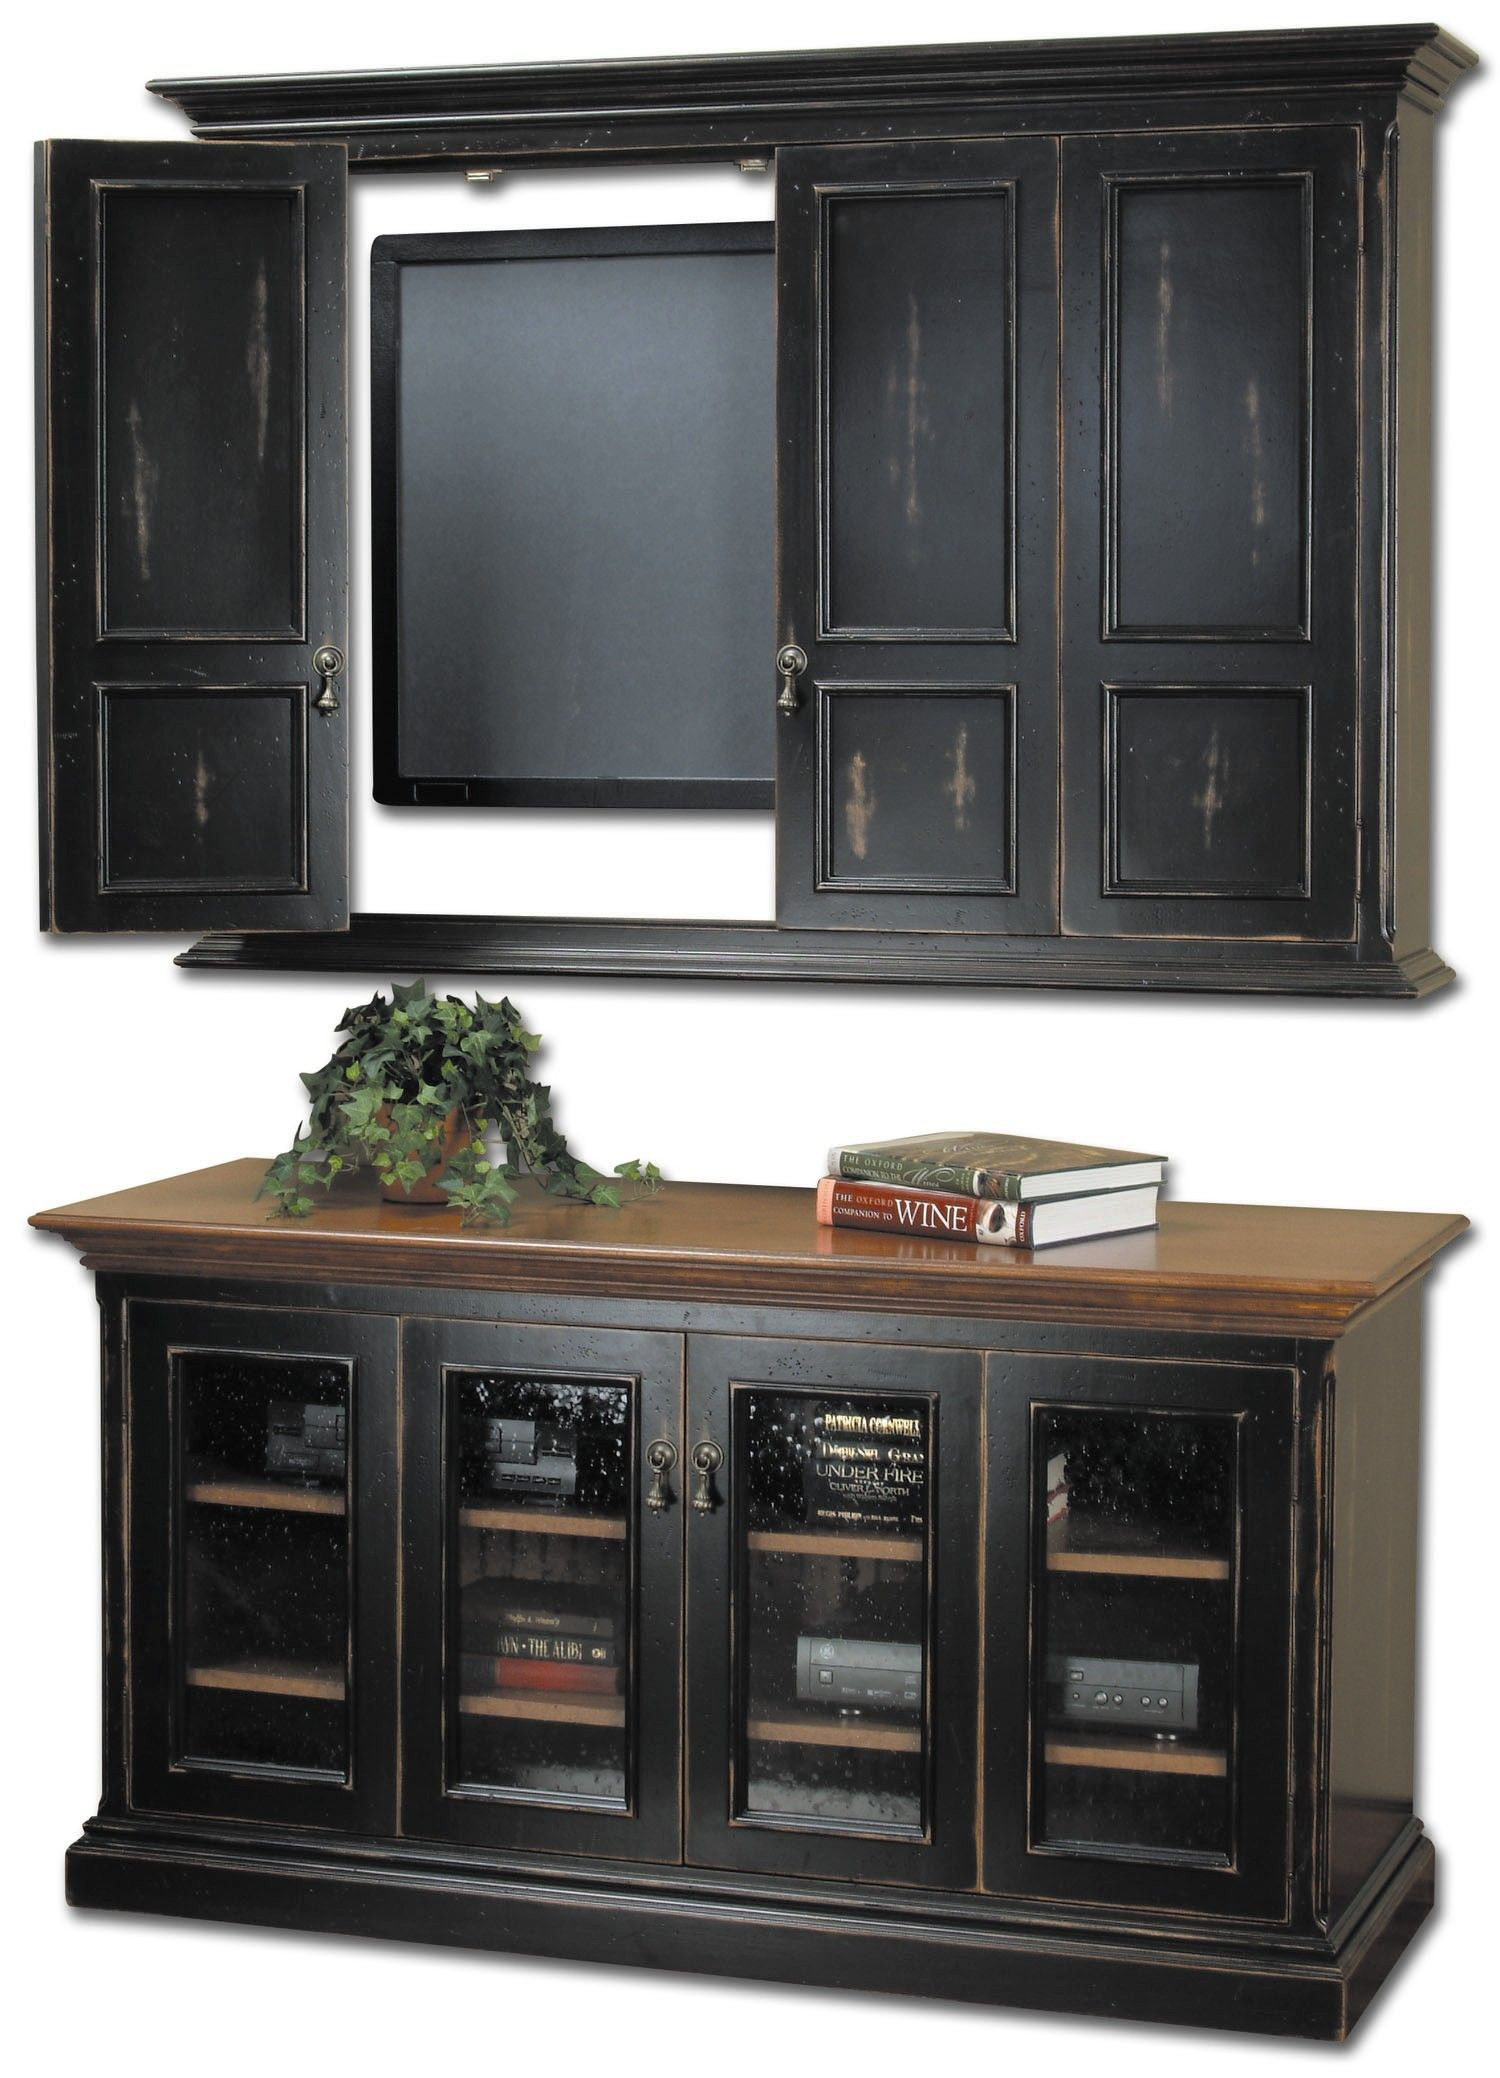 Tv Cabinets with Doors Beautiful Country Classics Painted Furniture Hillsboro Flat Screen Tv